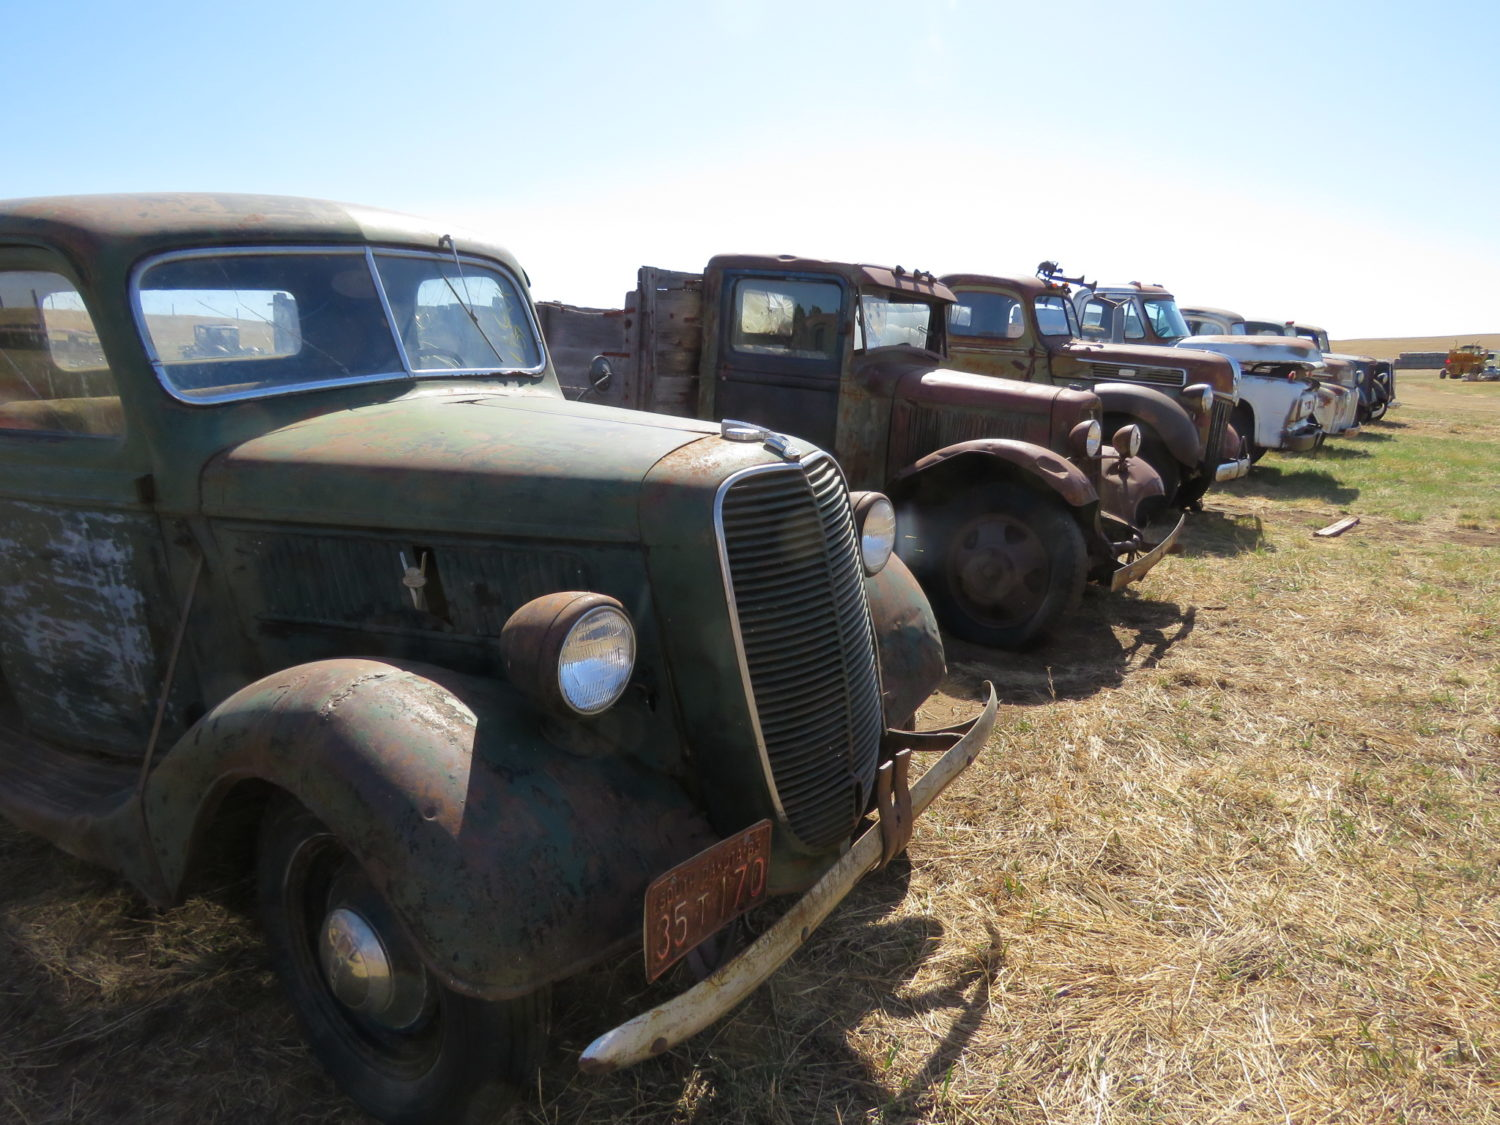 Fabulous Collector Cars, Antique Tractors, Memorabilia & More! The Krinke Collection - image 22